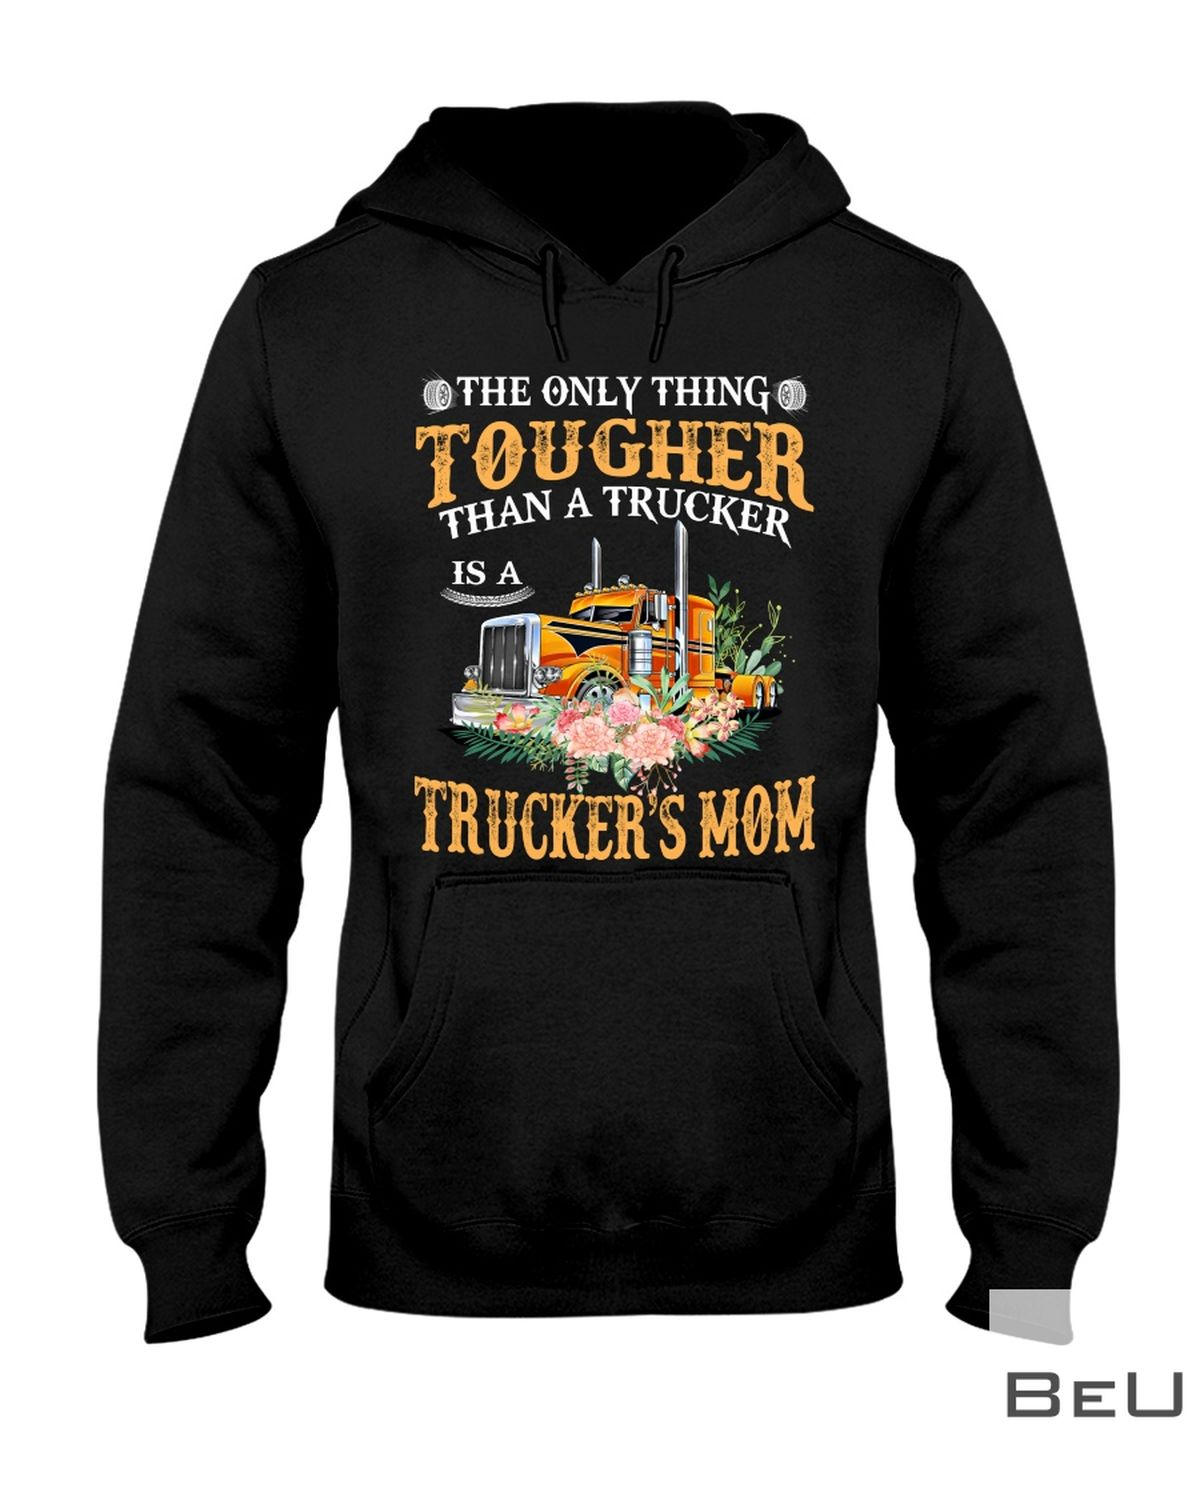 The Only Thing Tougher Than A Trucker Mom Shirtz